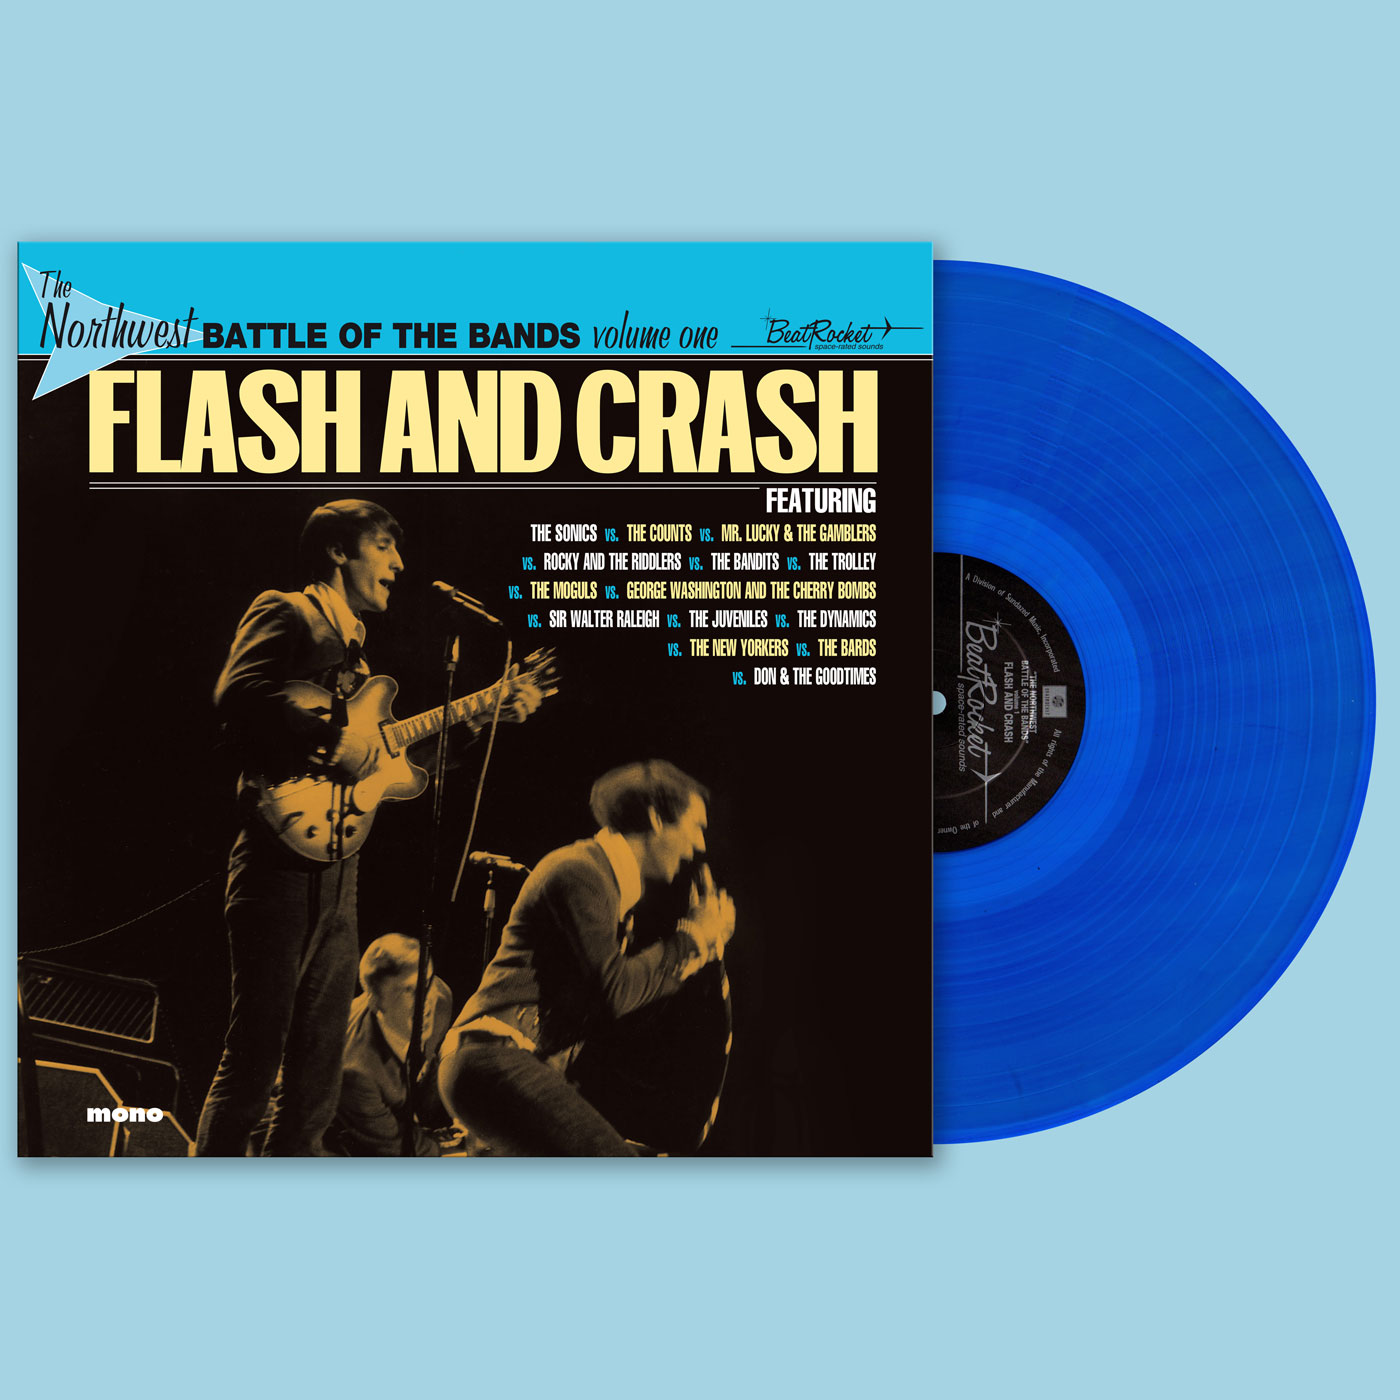 Various Artists - Northwest Battle Of The Bands - Vol. 1 - Flash And Crash - LP